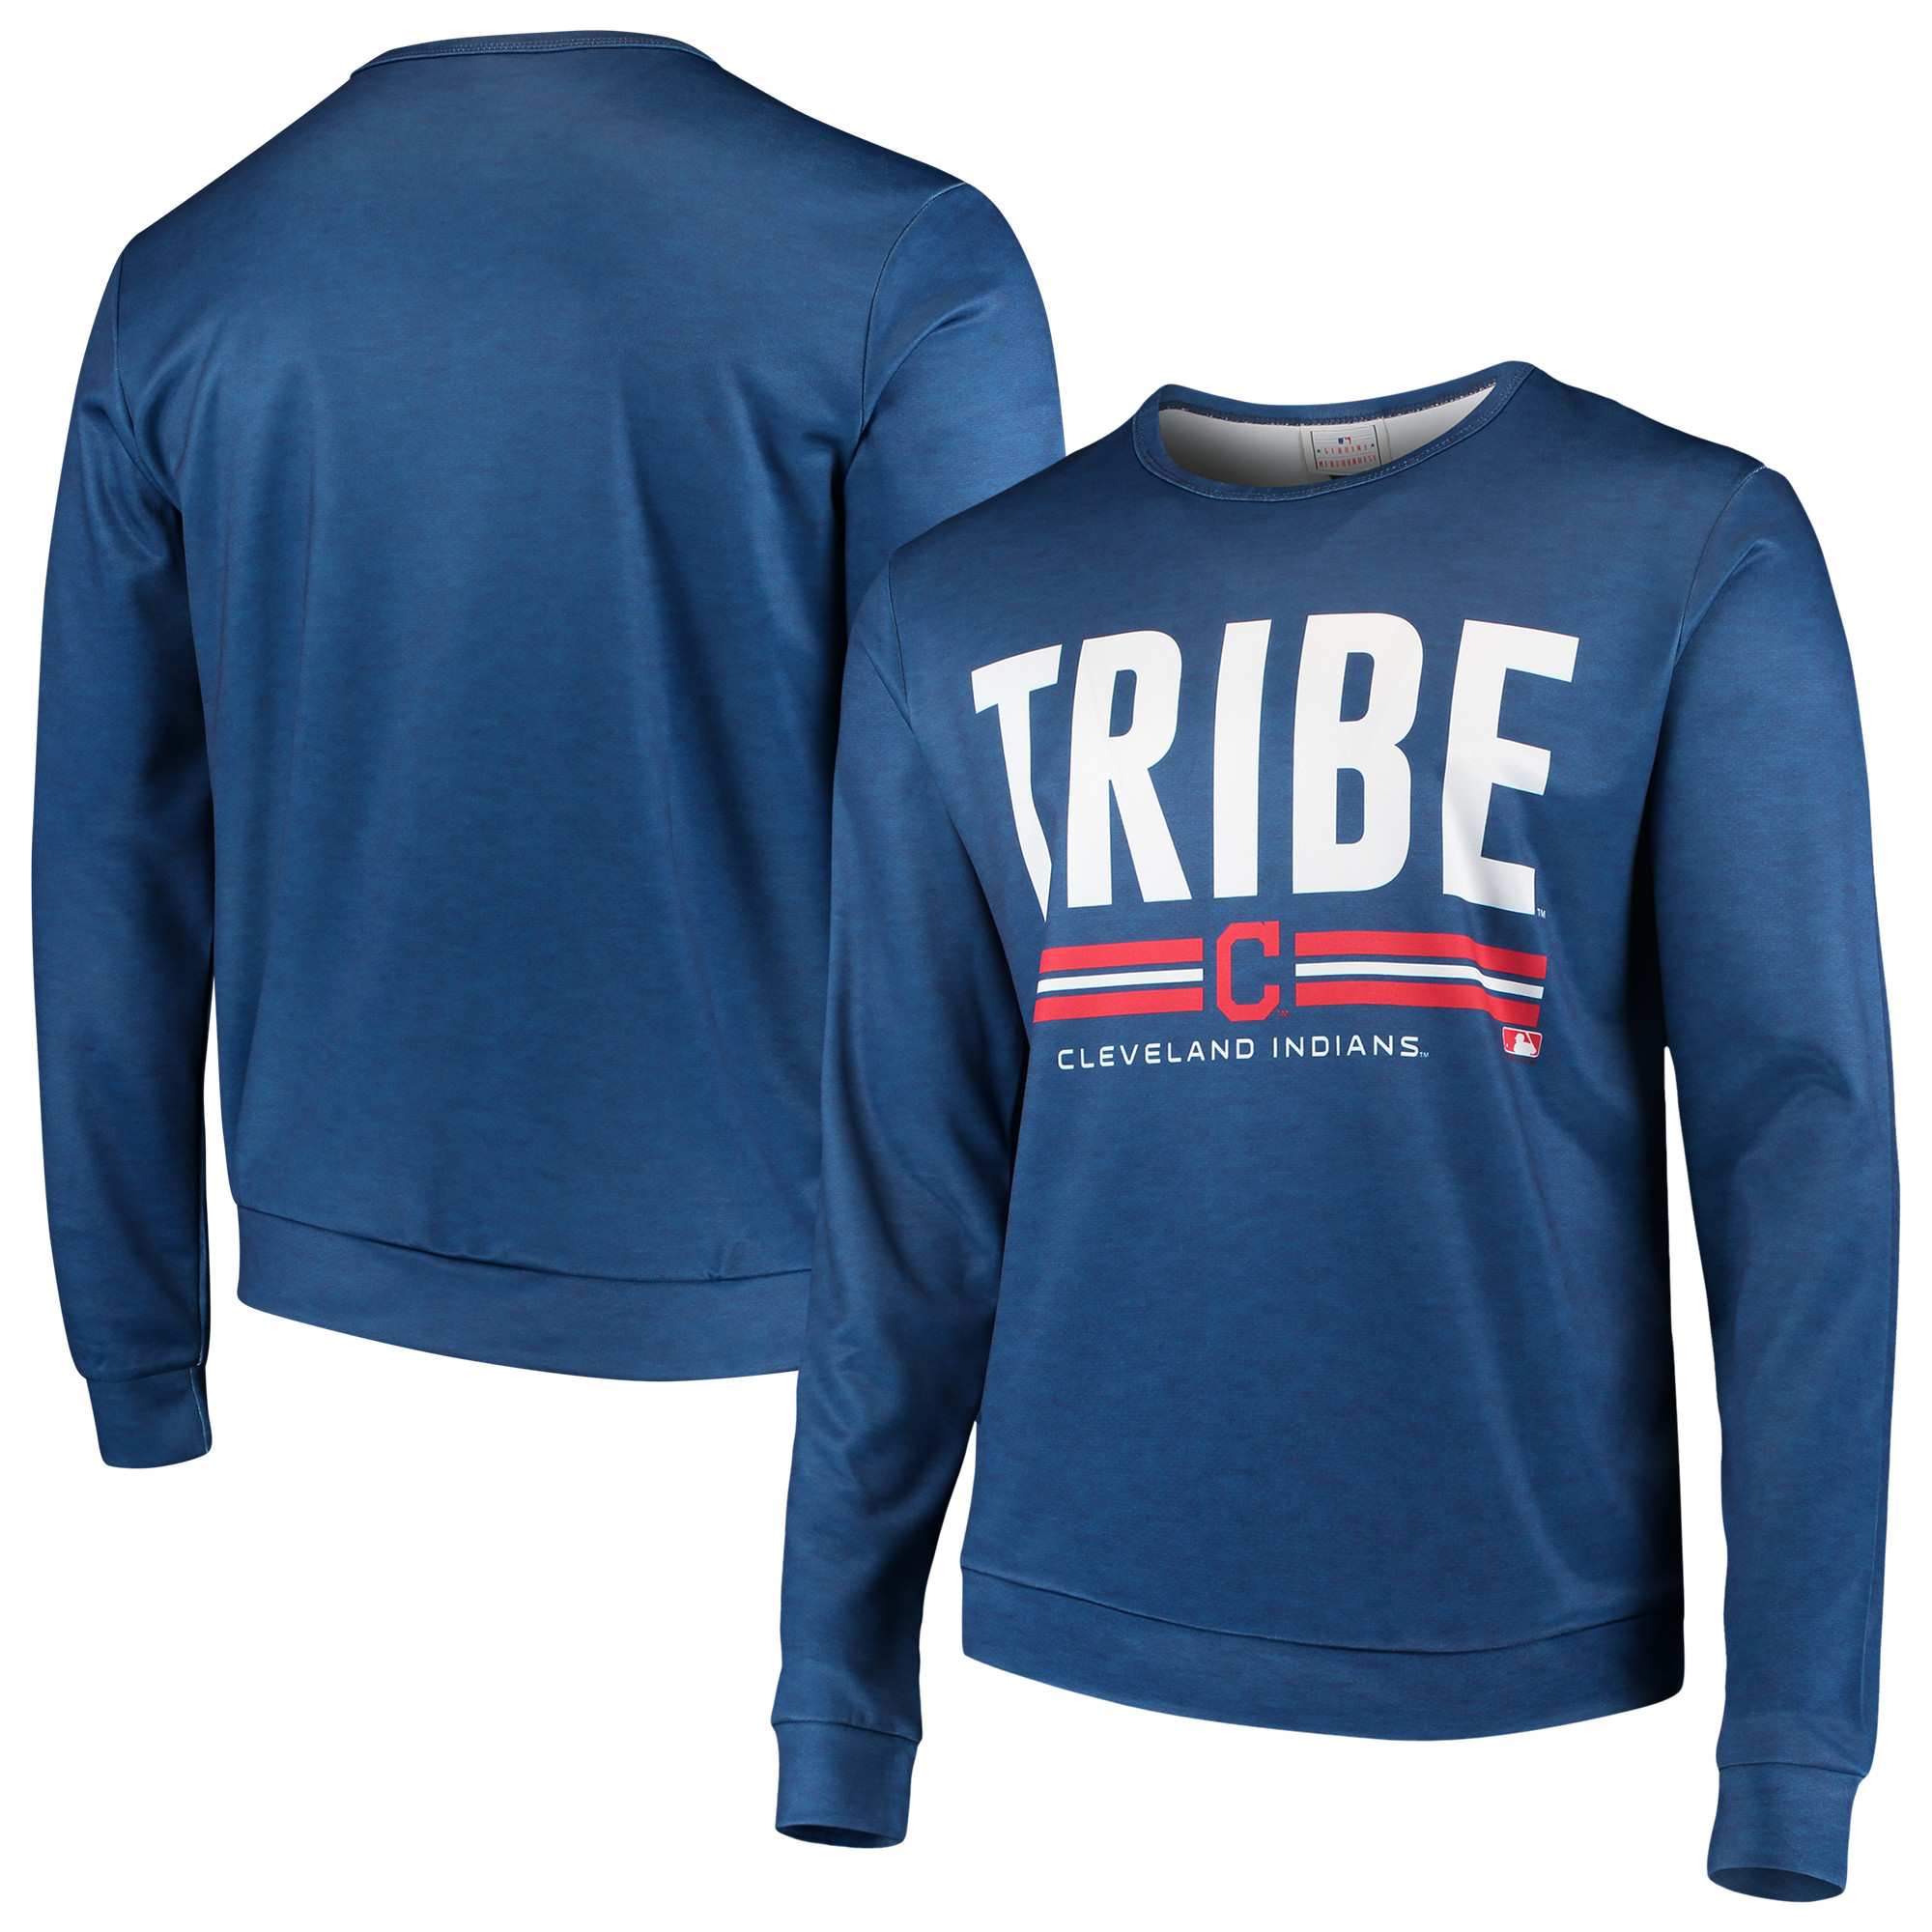 Cleveland Indians Localized Crew Neck Sweater - Navy